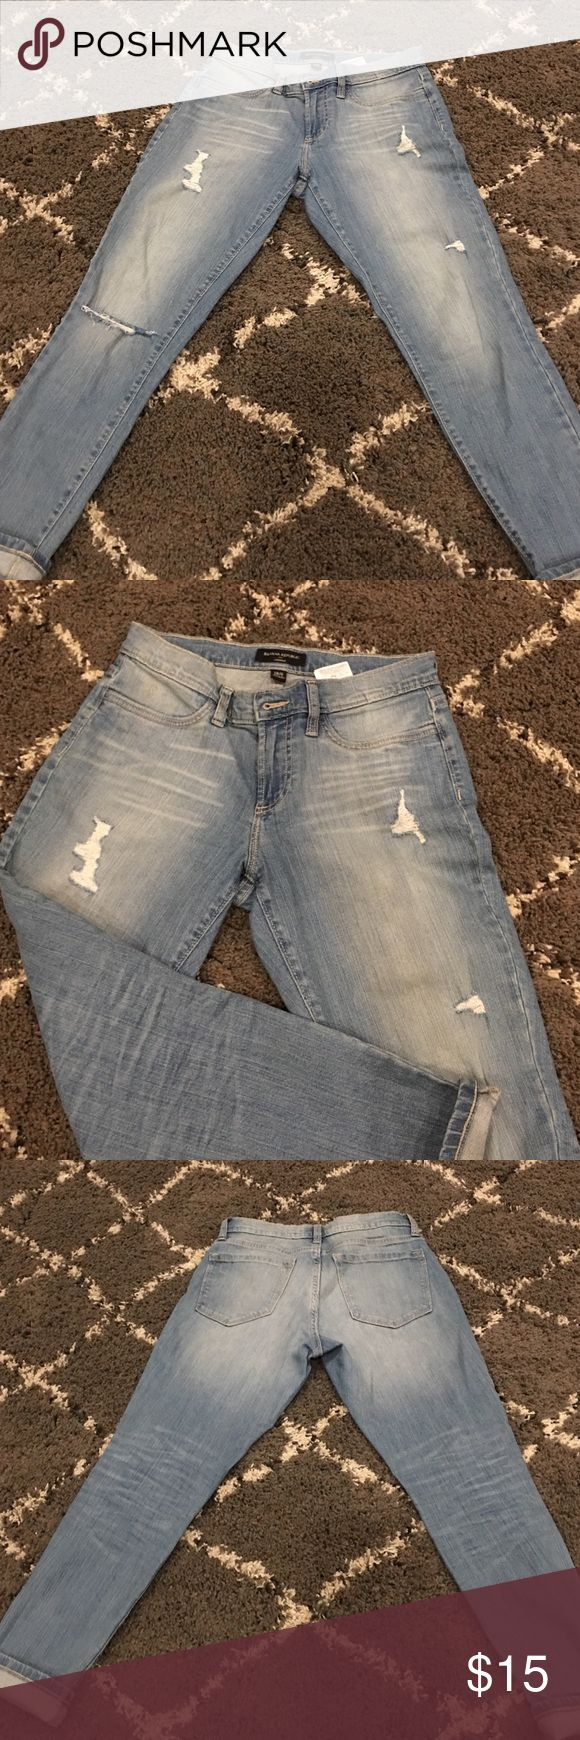 Banana Republic crop jeans Light destroyed banana Republic legging crop jeans. Gently worn! In fail bully's shape! 98%cotton 26in inseam Banana Republic Jeans Ankle & Cropped